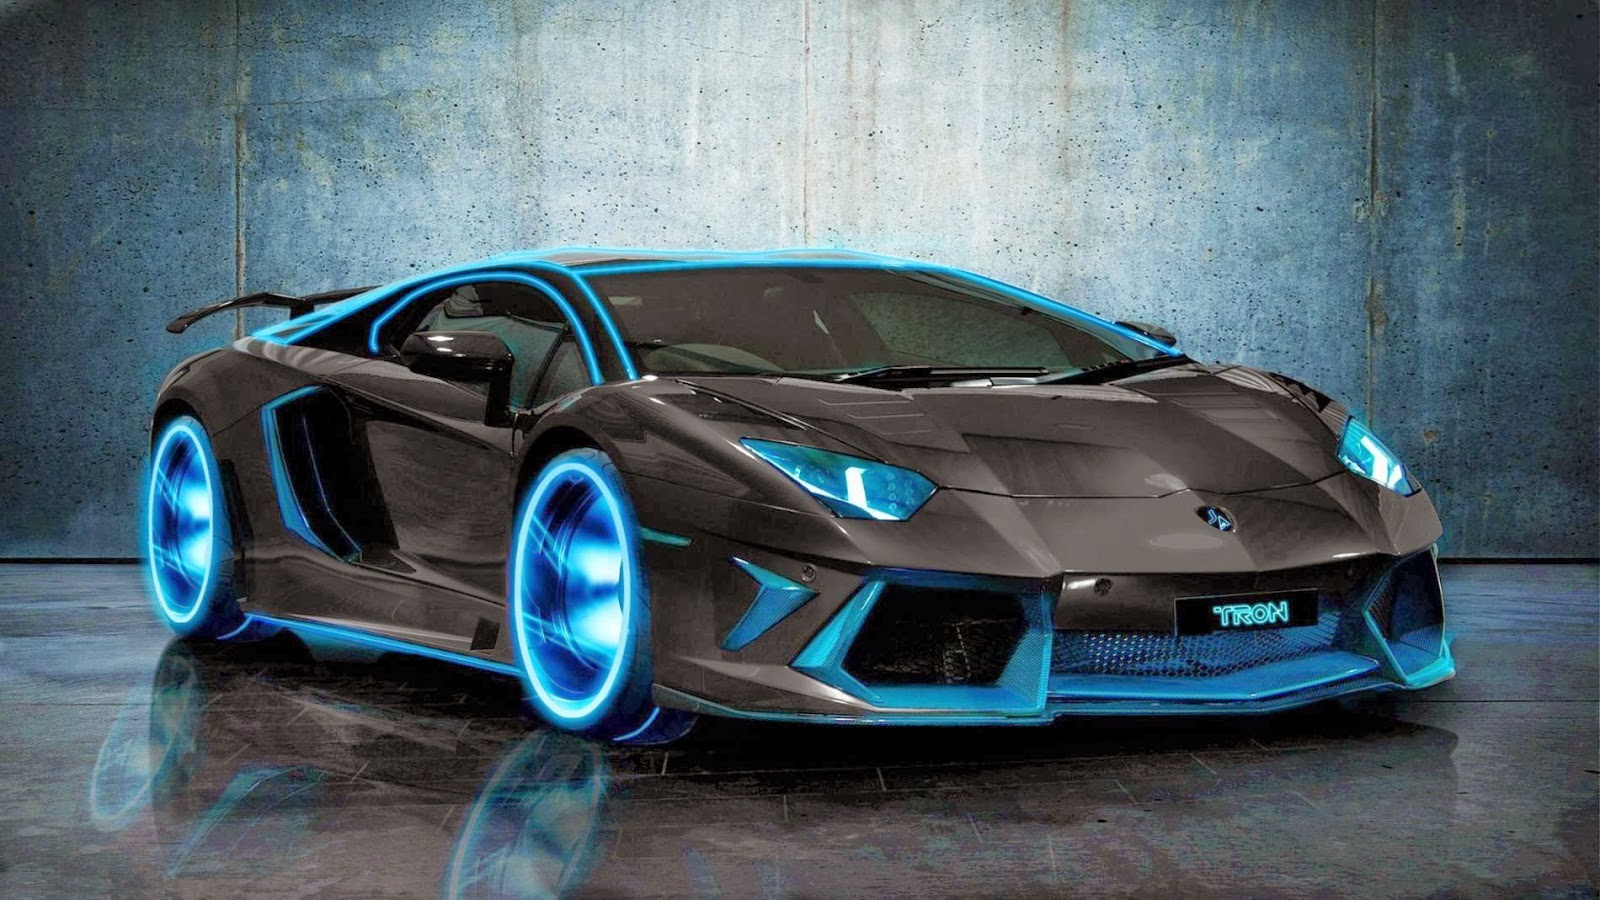 Lamborghini Aventador Black Velg Light Car Wallpaper High Quality